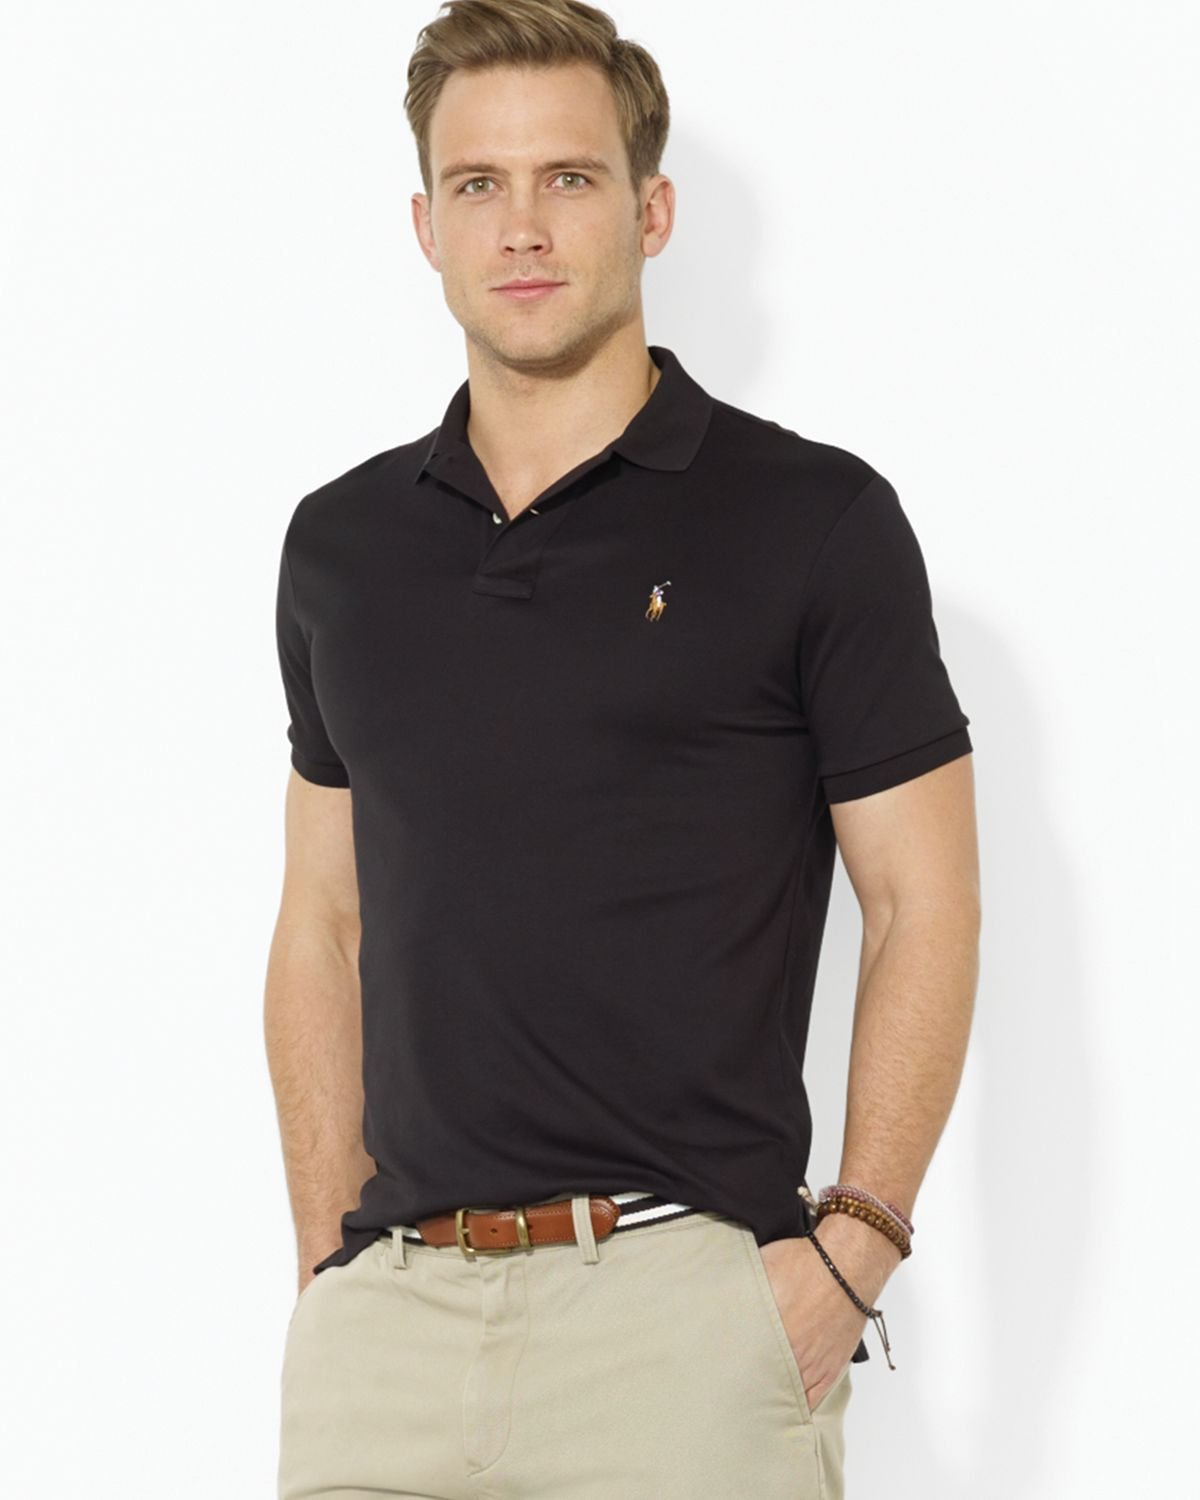 This bold black polo shirt from the Kalybre DUBAI collection is cut in a custom-fitted shape, completed with a classic collar. It combines quality craftsmanship and a contemporary perspective.